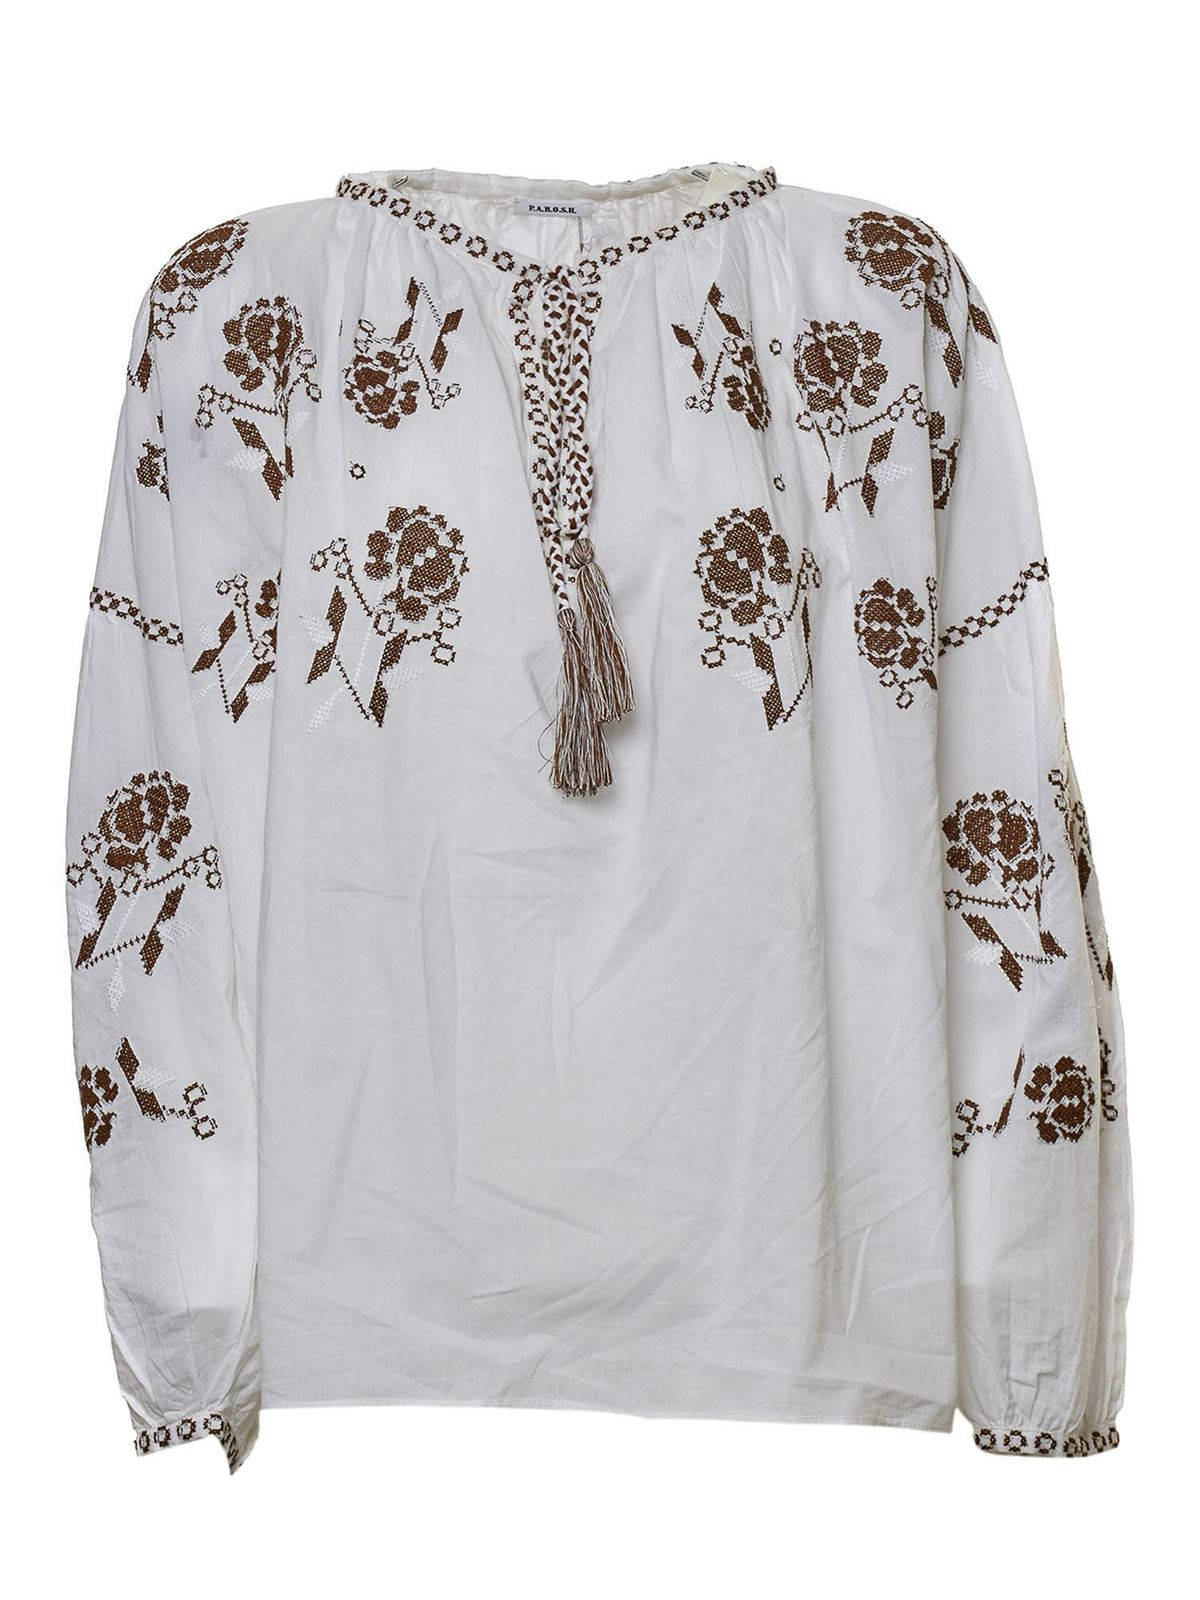 P.A.R.O.S.H. EMBROIDERED BLOUSE IN WHITE